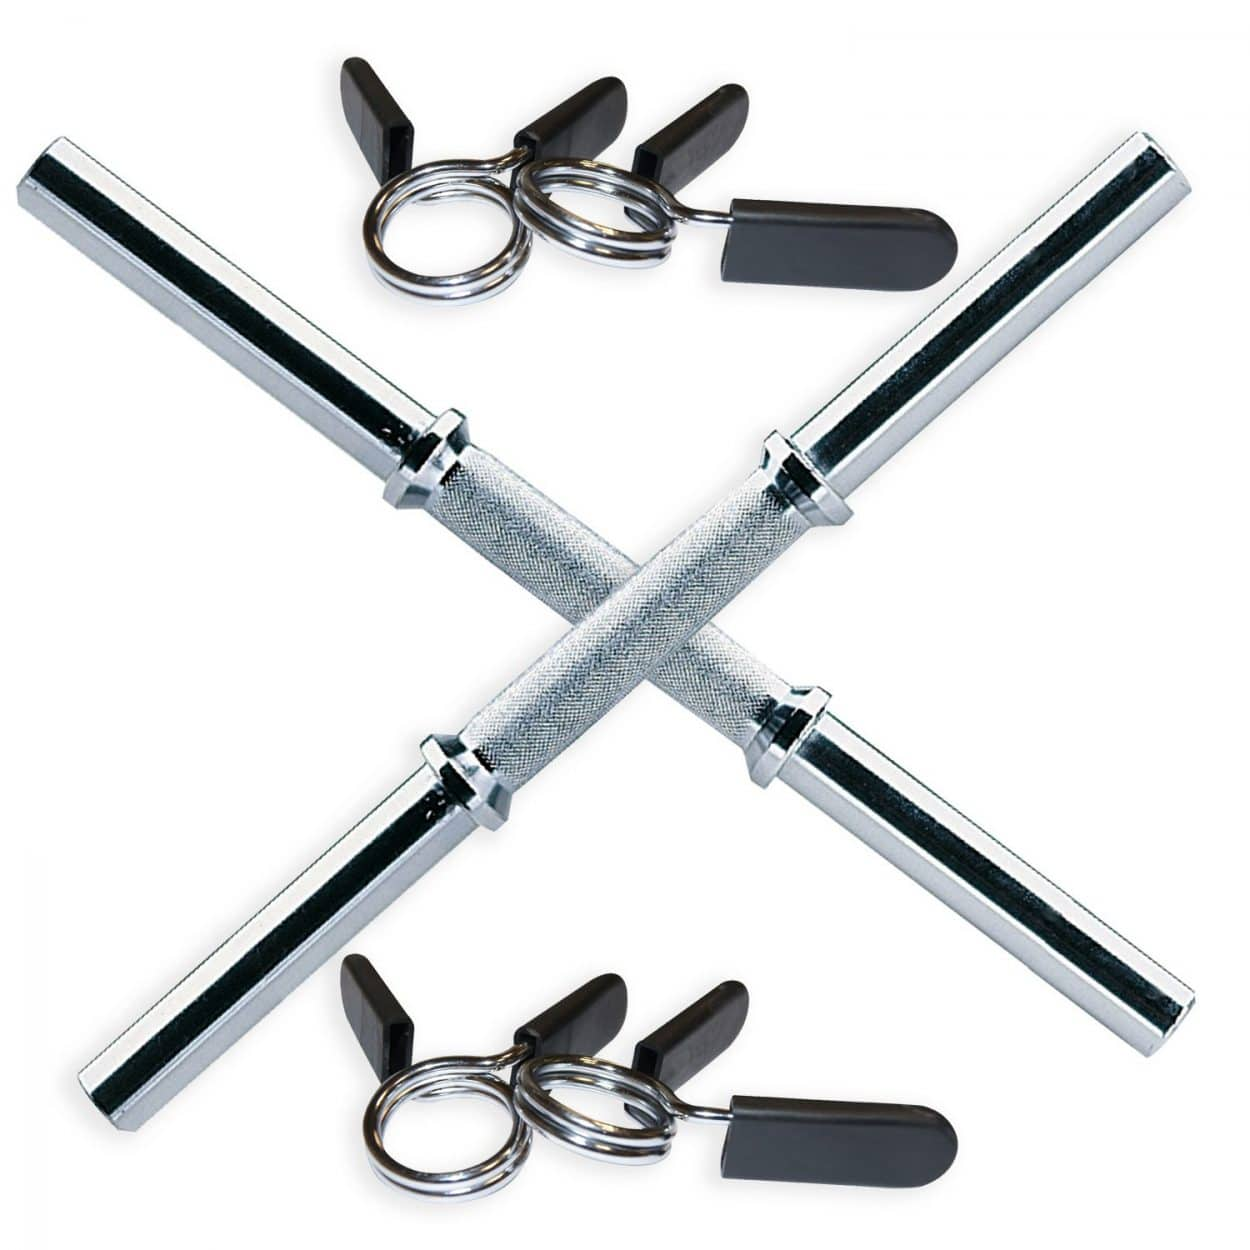 Body Power Solid 18 Standard Dumbbell Handles (x2) with Spring Collars